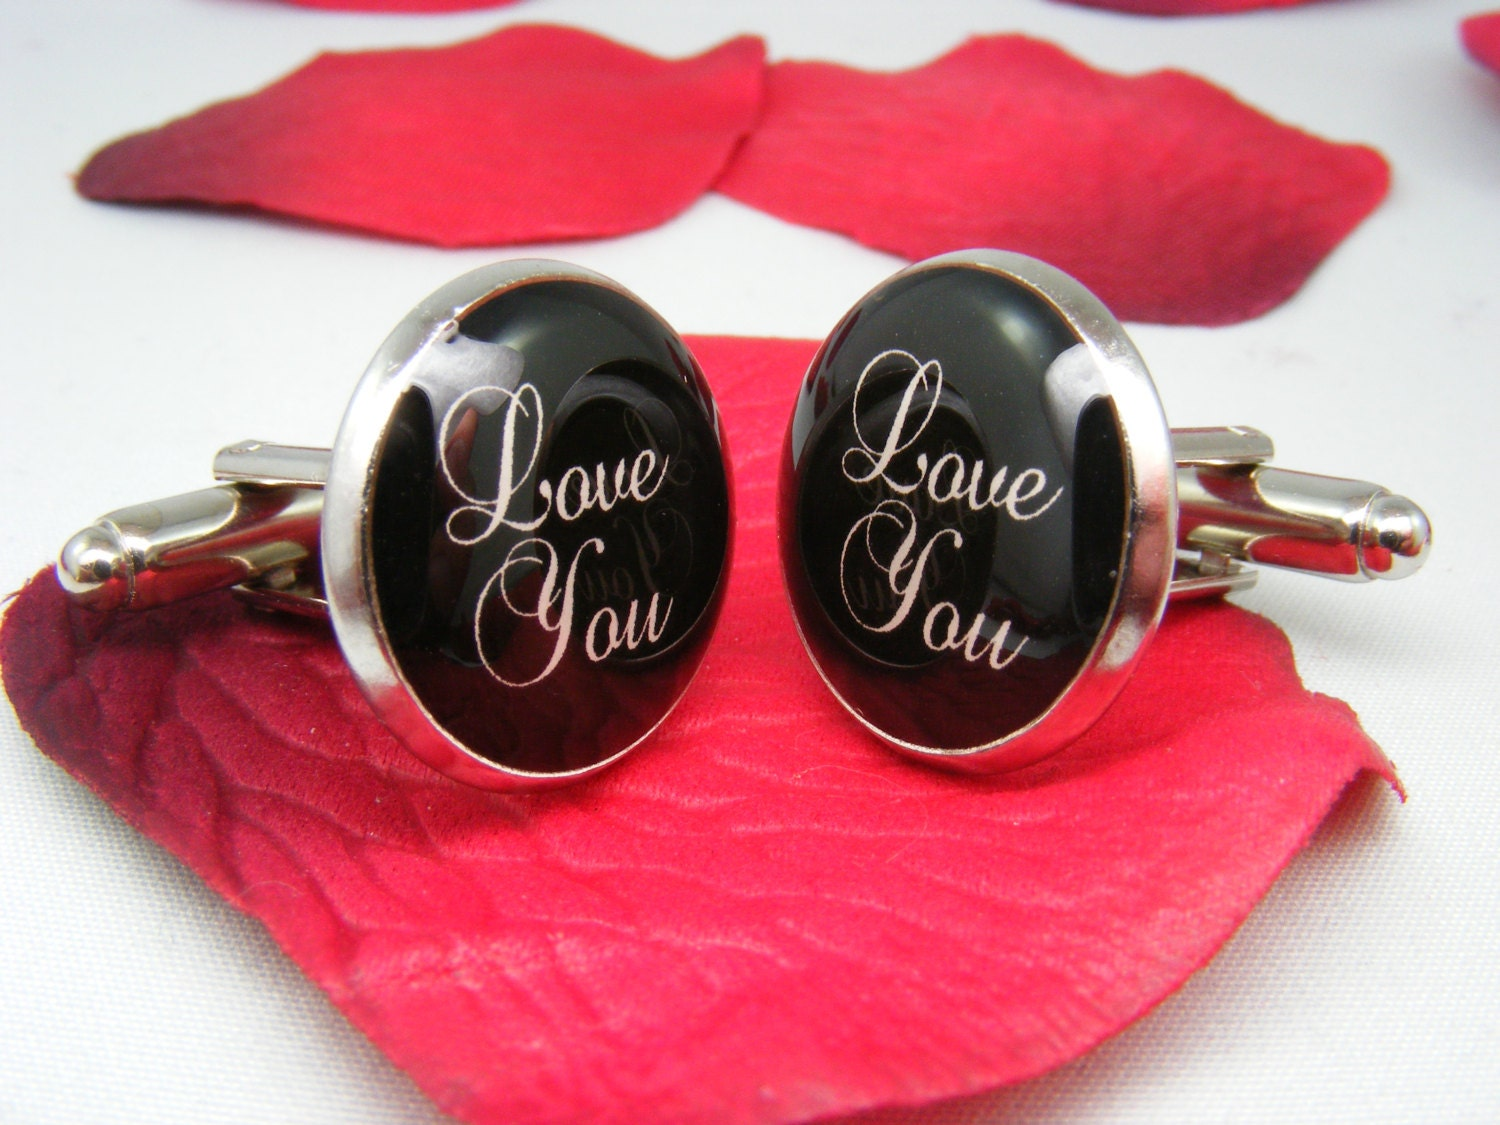 Love You Cufflinks   Valentineu0027s Day   Mens Accessories   Geekery    Boyfriend Gift   Husband Gift   Unique Gift Ideas   Gift For Him   Love